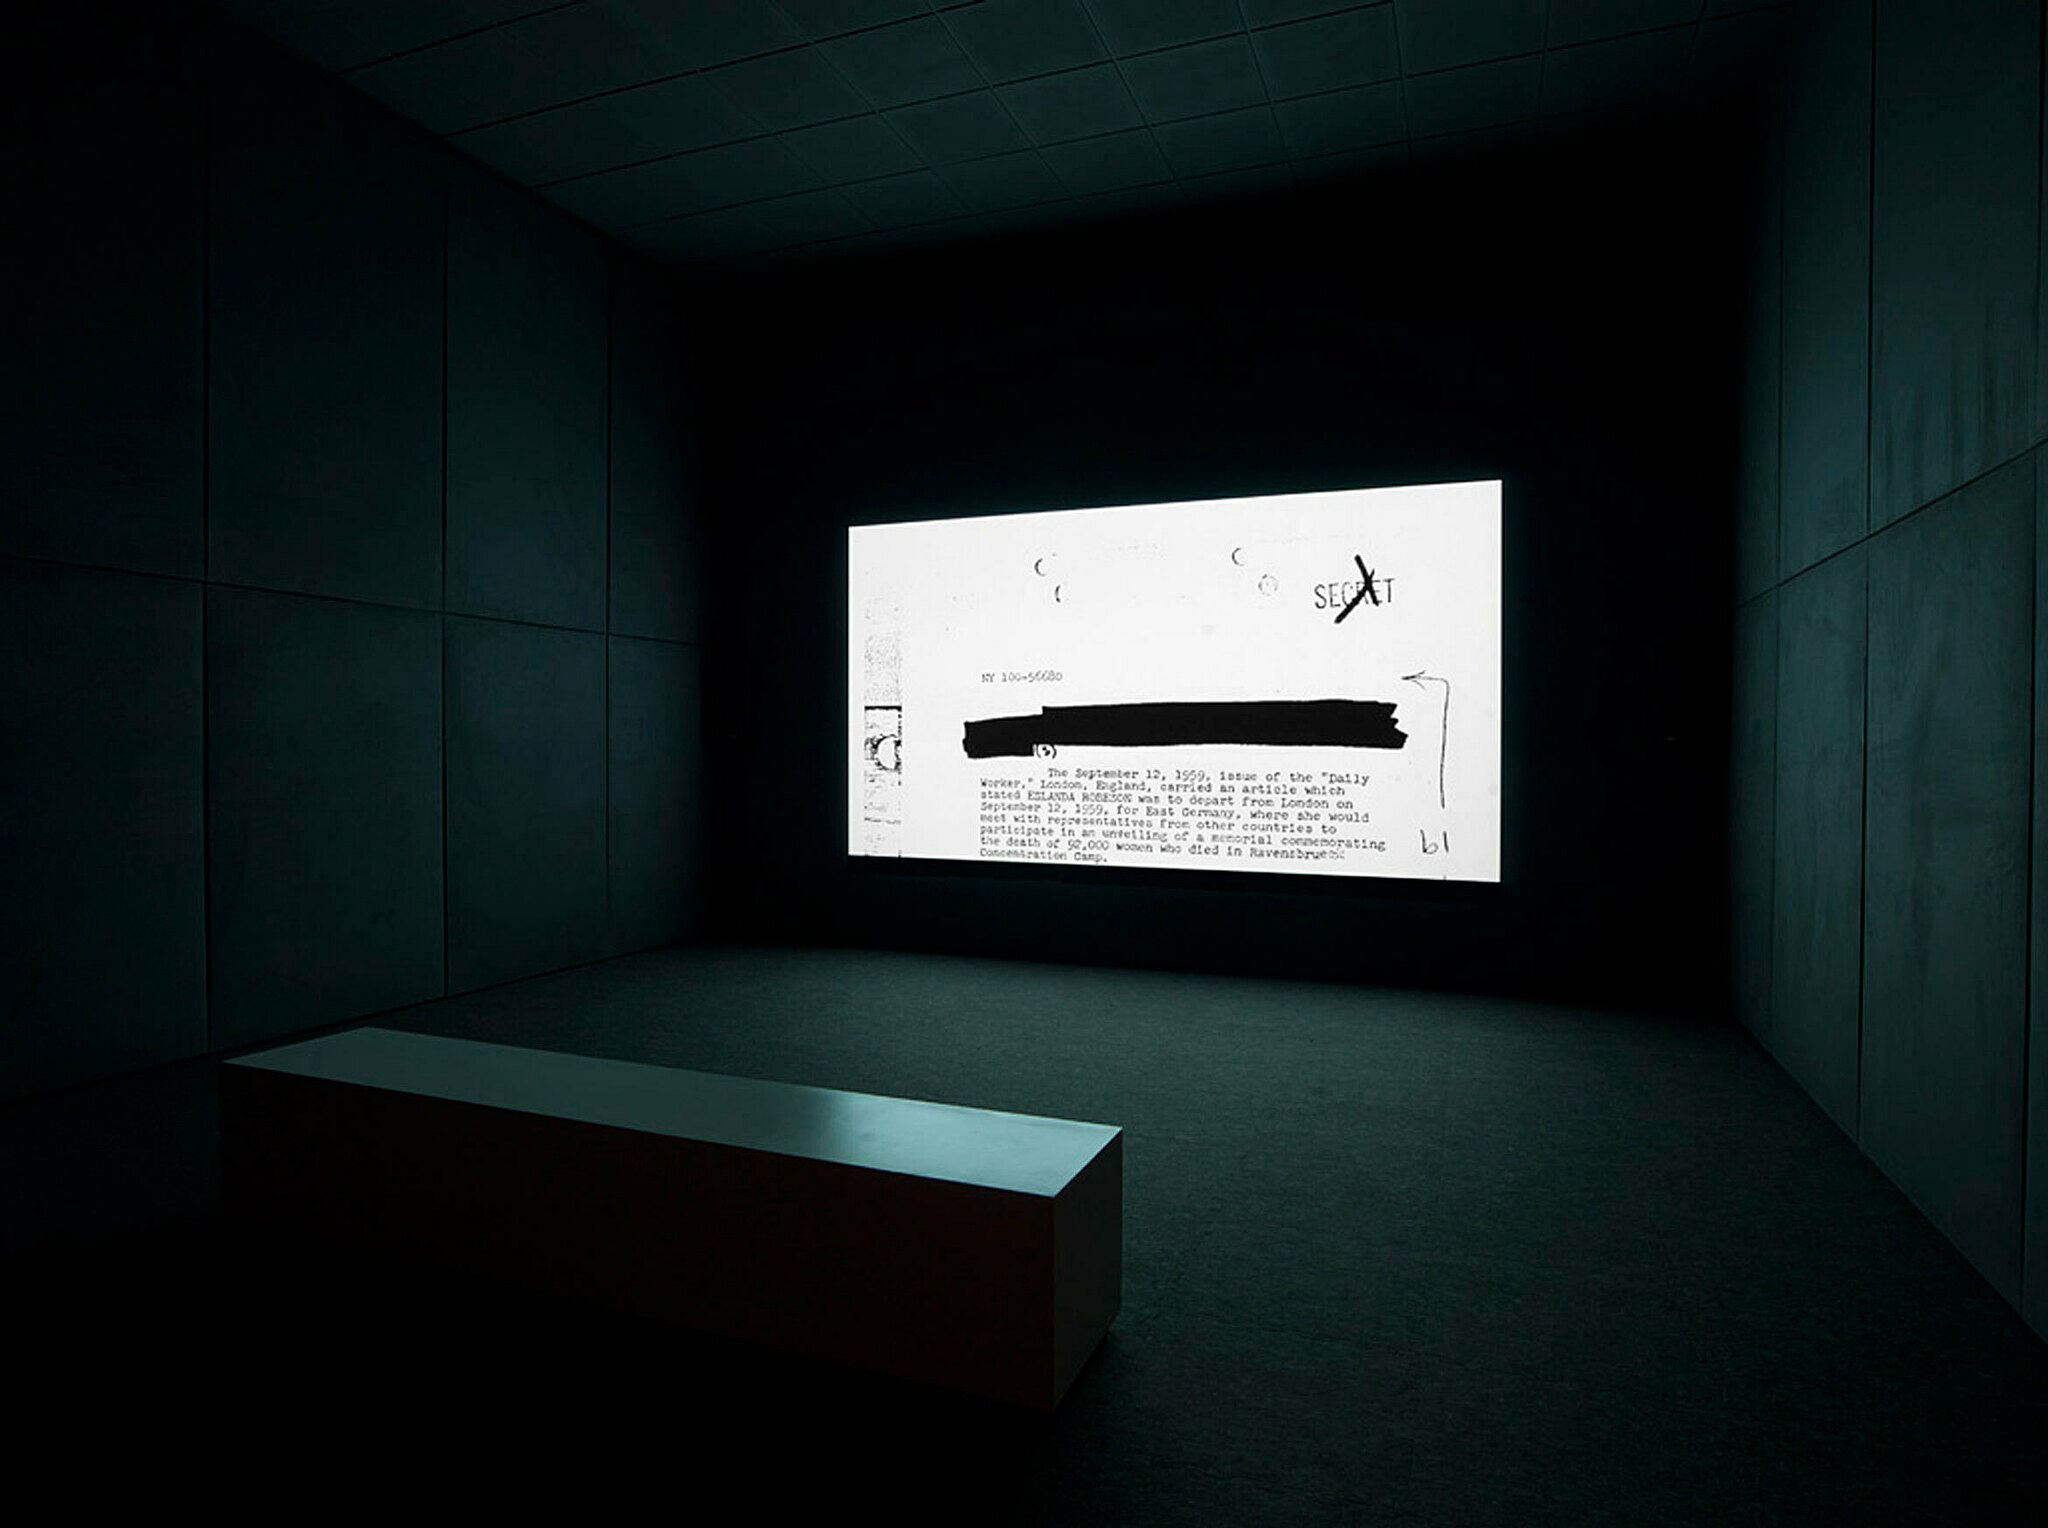 A projection of a work by Steve McQueen. A typed document flickers on the screen in a dark gallery